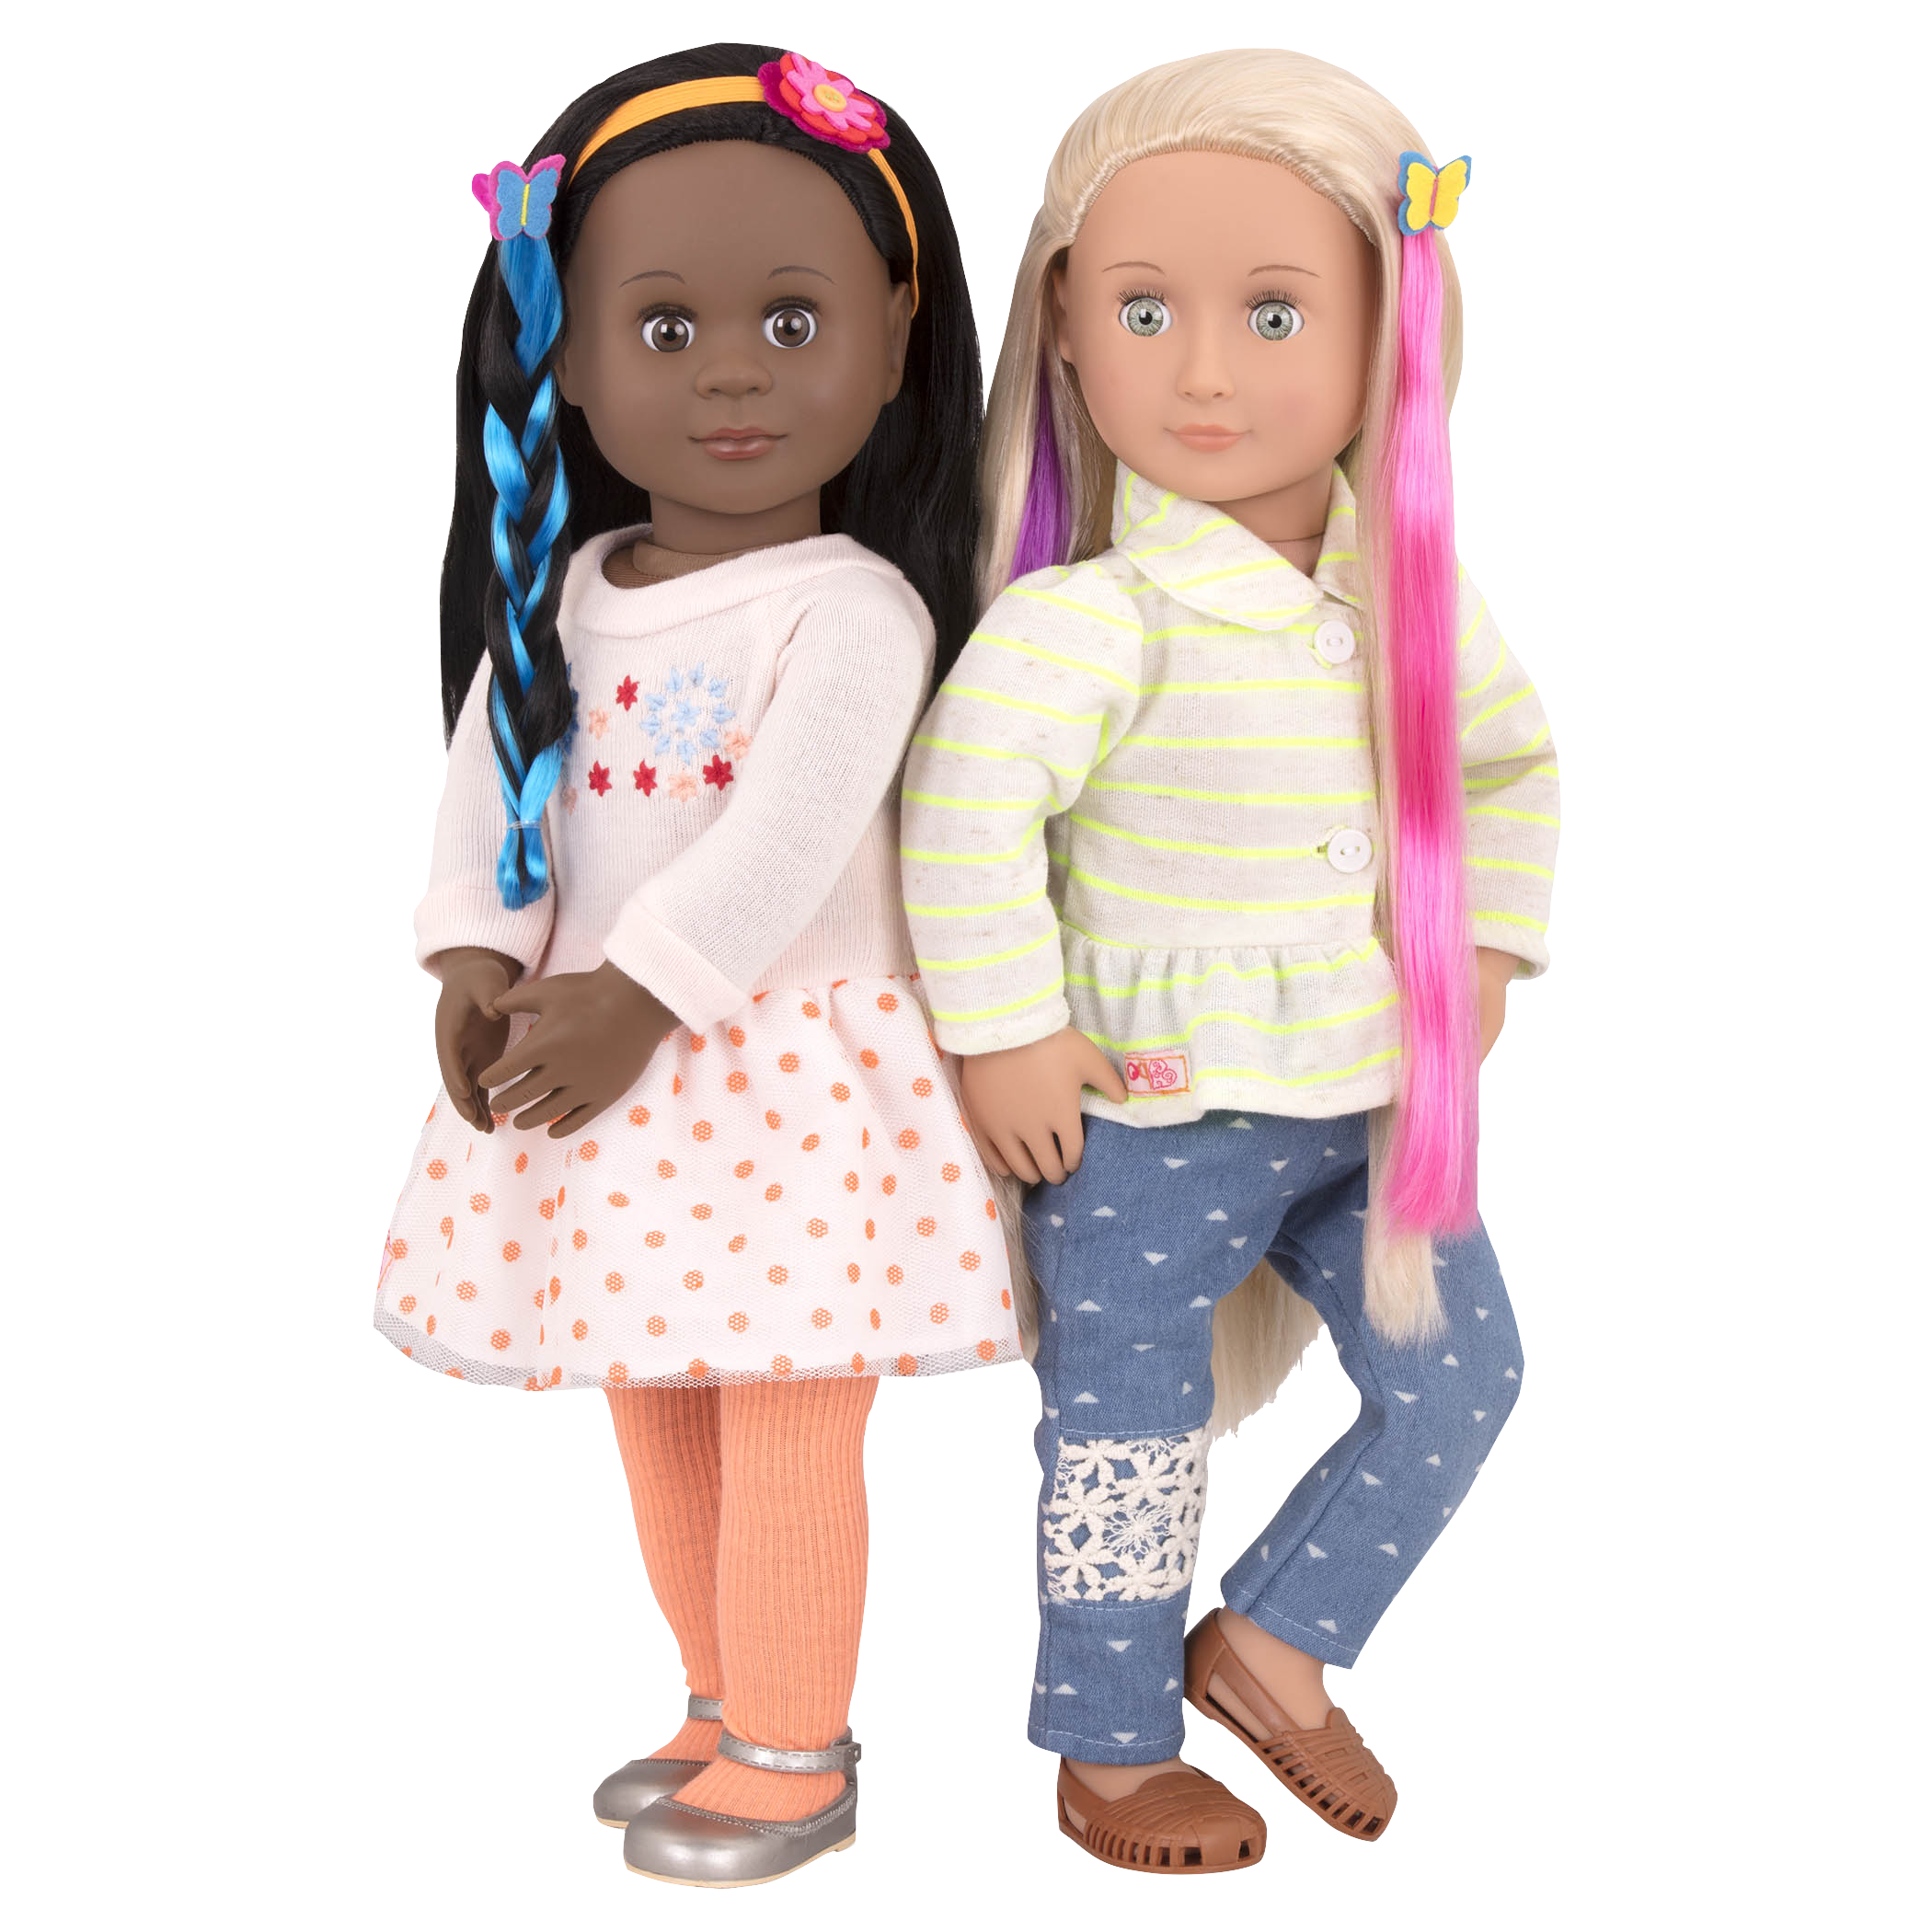 Attached at the Clip Maeva andNaya dolls earing hair accessories